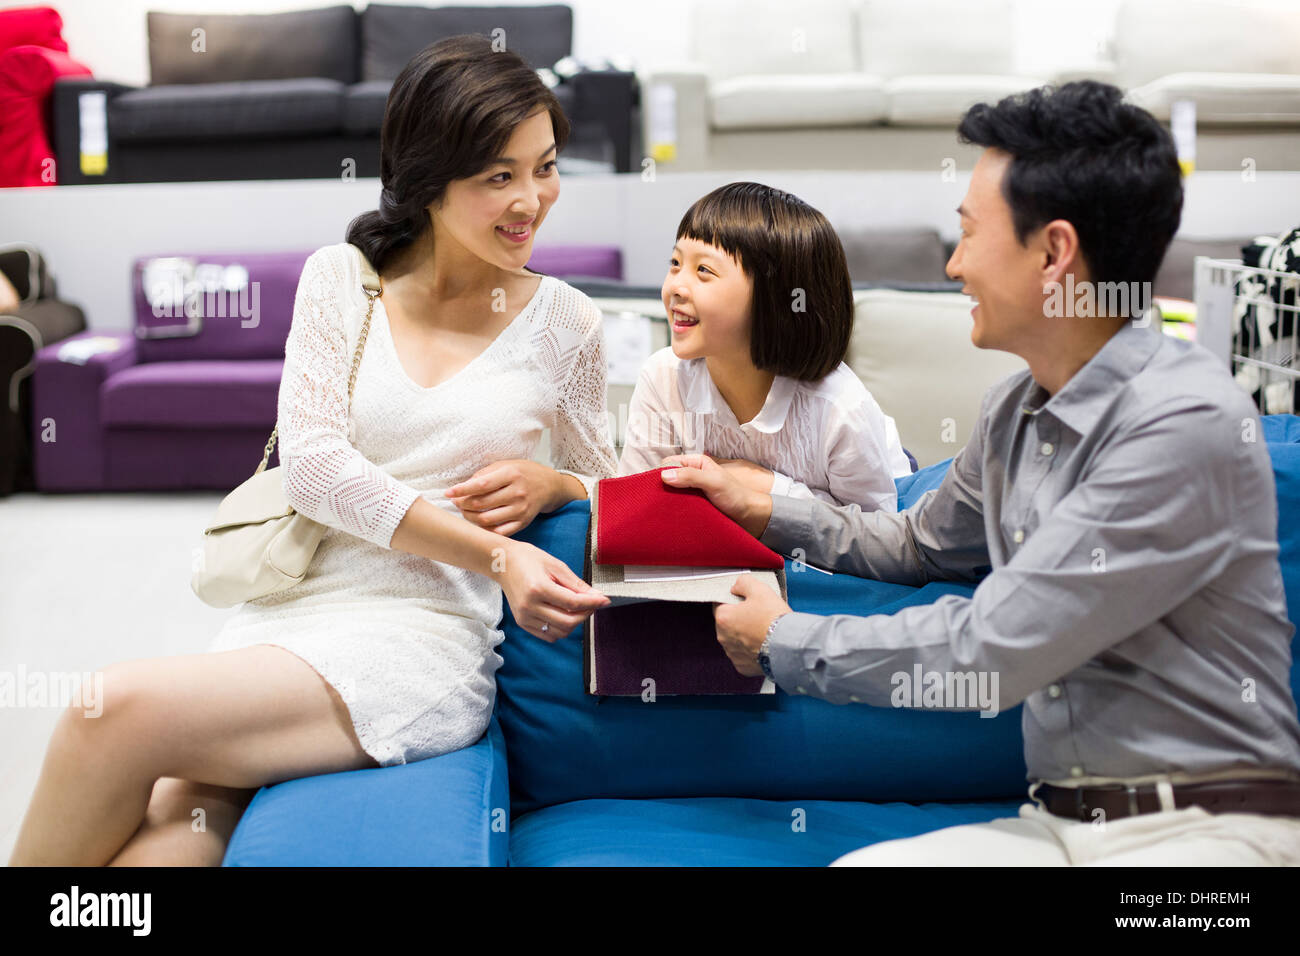 Happy Family Shopping For Sofa In Furniture Shop Stock Photo